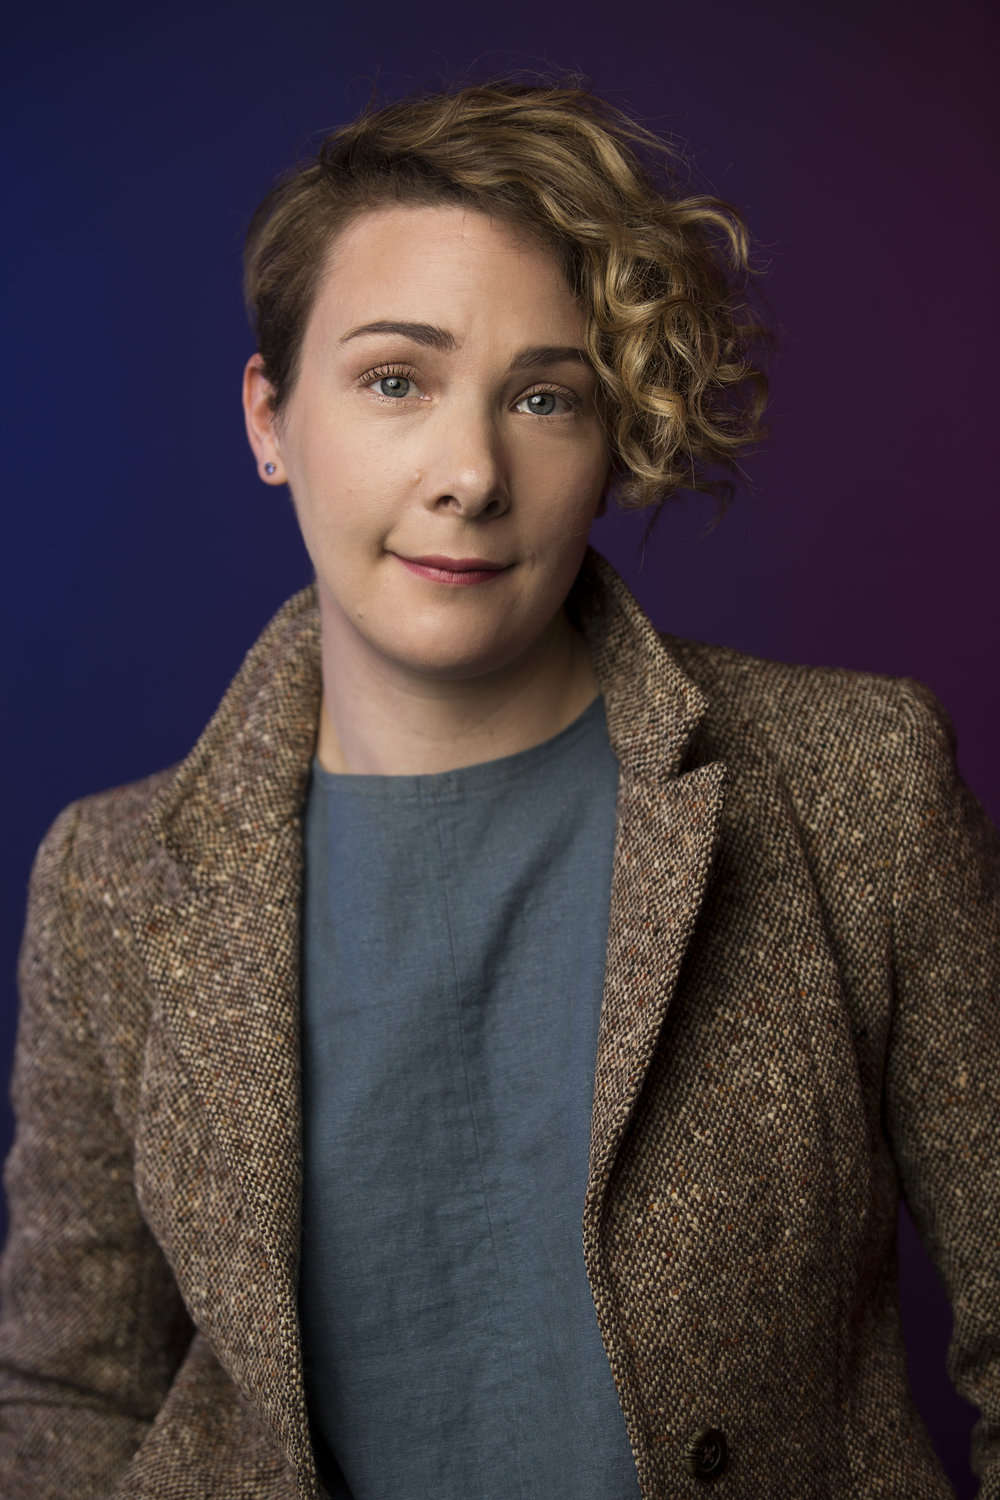 "HONORA TALBOTT (Director, Writer, & 'Billi') - Honora is a director and comedian and yep, the ""H"" is silent. Originally a classically trained actor with grandiose dreams of one day murdering some Off-Broadway Moliere, she first received a B.A. in Theater from Amherst College. But after studying comedy at UCB, I.O West, and The Groundlings, she started creating her own work and never looked back. Her feminist and socio-political satirical sketches have been featured many times in top blogs (like Huffington Post, the AV Club, Bustle, US Weekly, Entertainment Weekly, and more) and shared by celebrities like Elizabeth Banks and LA's Mayor Eric Garcetti. Behind the camera, she's directed sketches produced by AwesomenessTV and learned as much she could about directing and television writing working as showrunner's assistant on Emmy Award winning Master of None. As a writer, her TV Spec Script is a FINALIST in the AUSTIN FILM FESTIVAL and won GRAND PRIZE in the Hollywood Screenplay Contest. She was also a Quarterfinalist in We Screenplay's TV Contest, Screencraft's Comedy Screenplay Contest and the Creative World Awards. We Know Where You Live is her first short film. It's screened at five Oscar Qualifying Festivals and is a NBCU SHORT FILM FESTIVAL FINALIST."